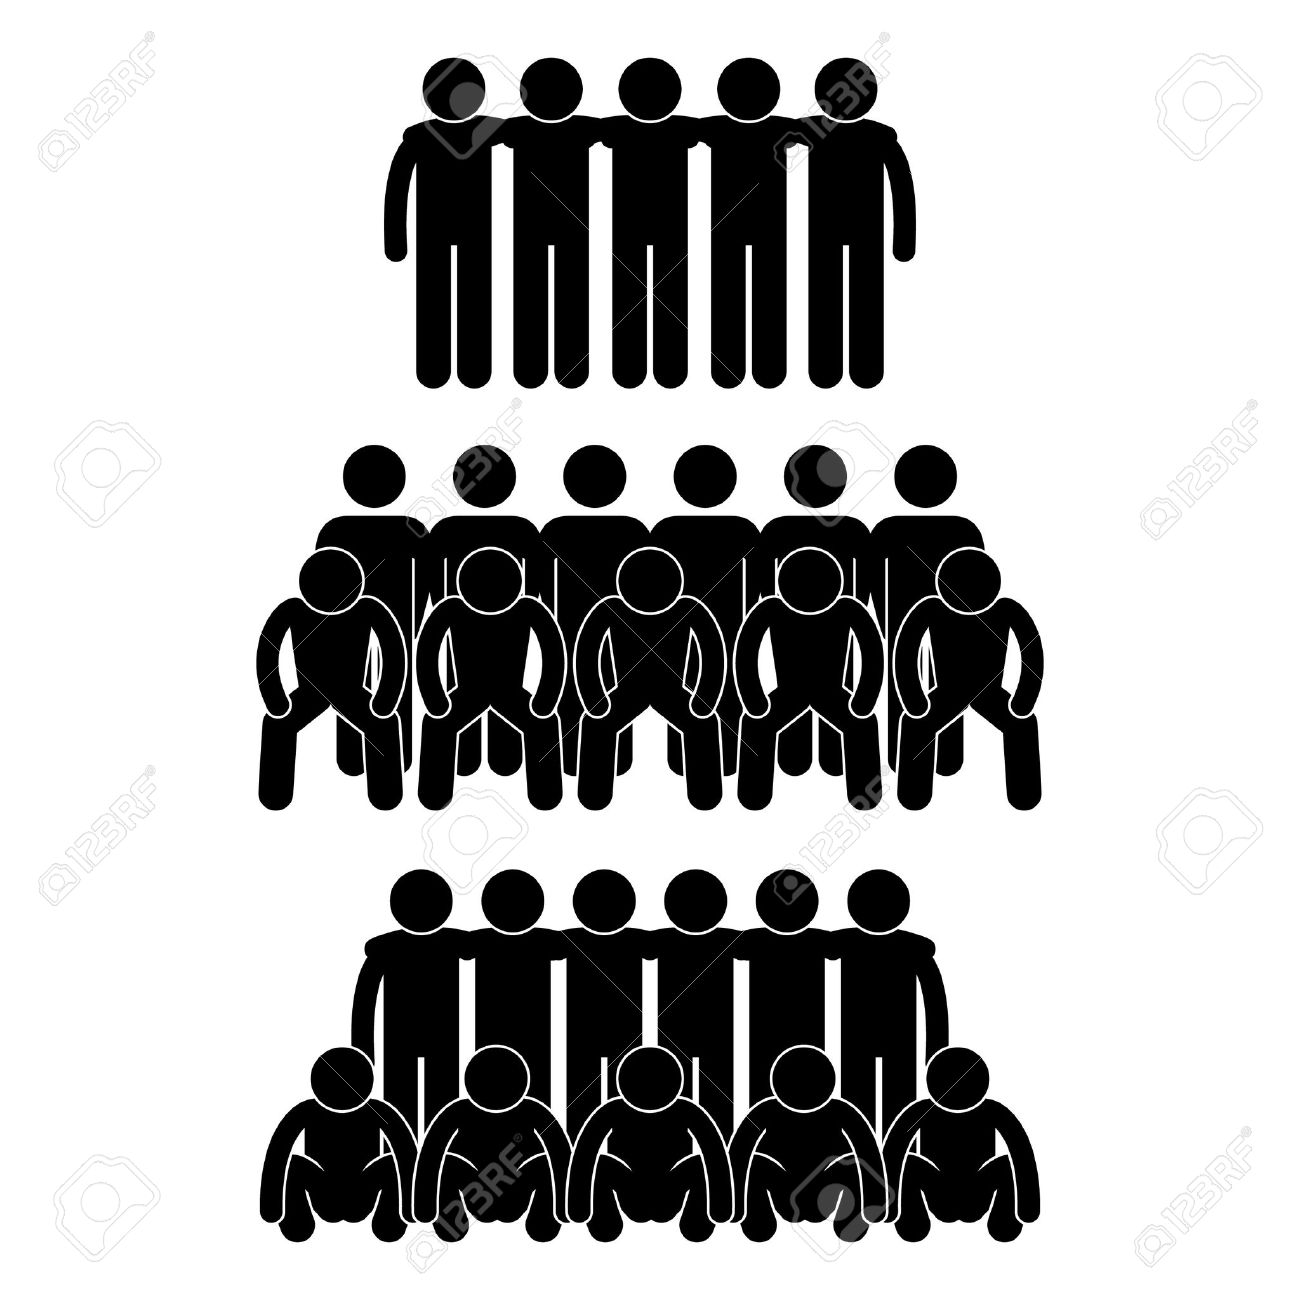 People United Clipart